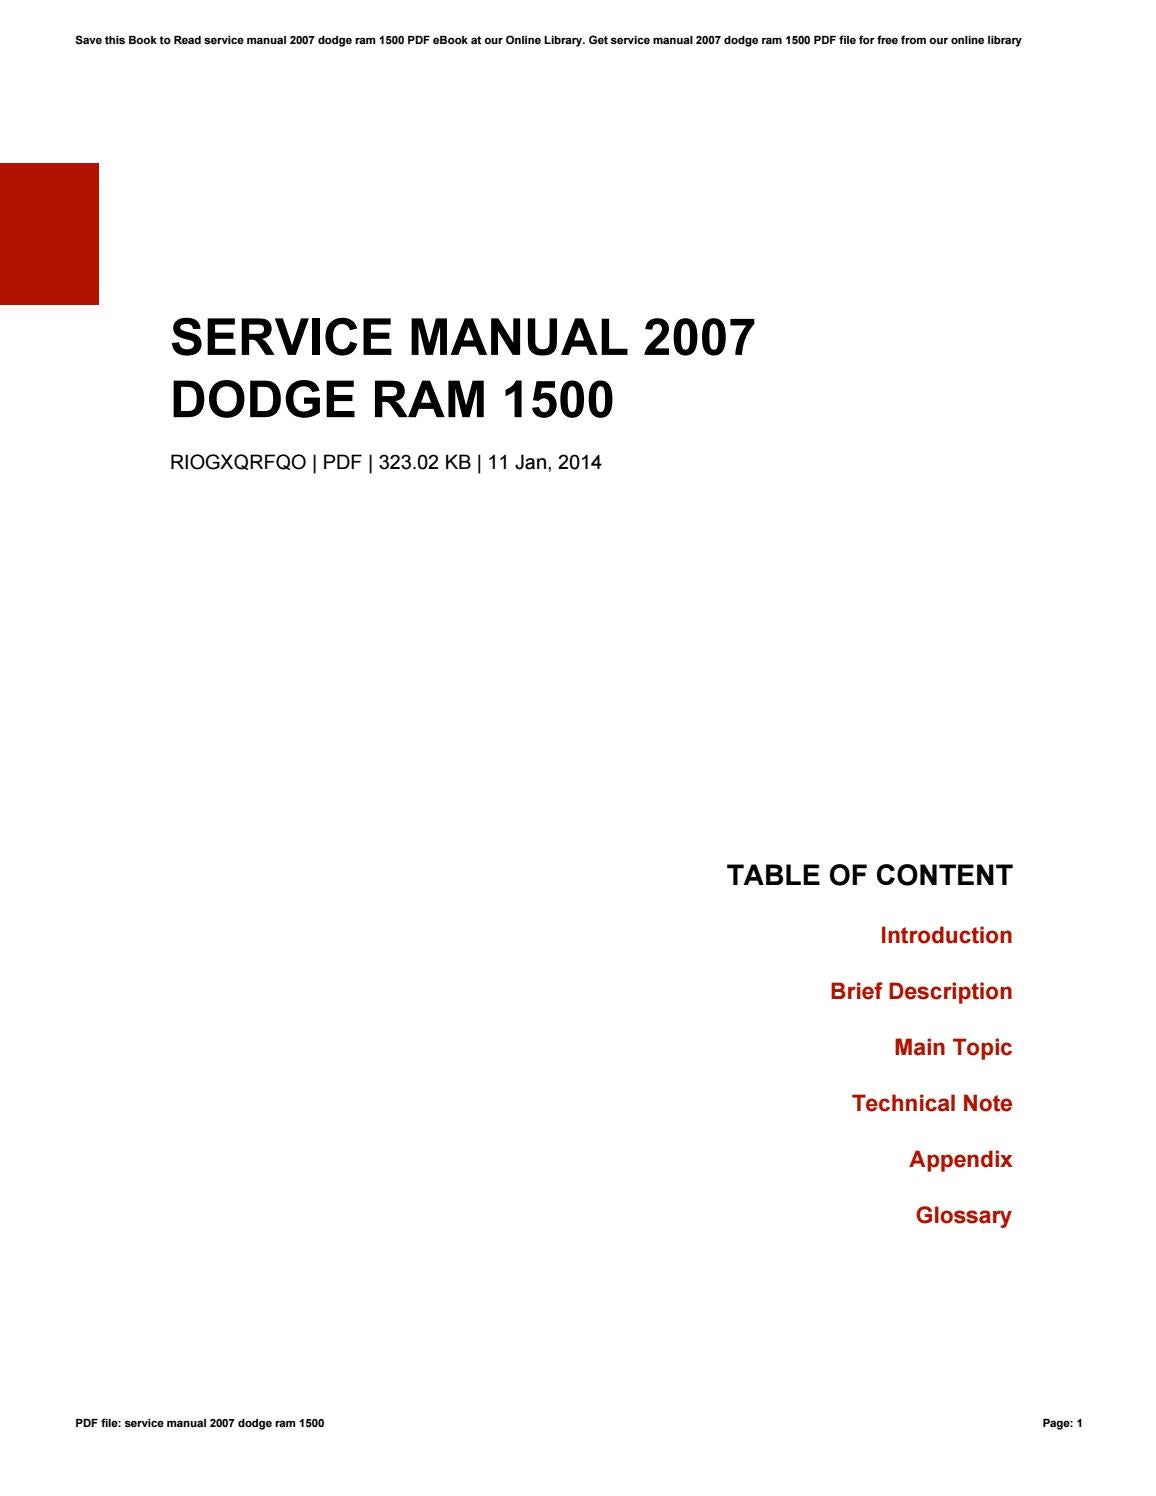 service manual pdf 2007 dodge ram 1500 service manual. Black Bedroom Furniture Sets. Home Design Ideas